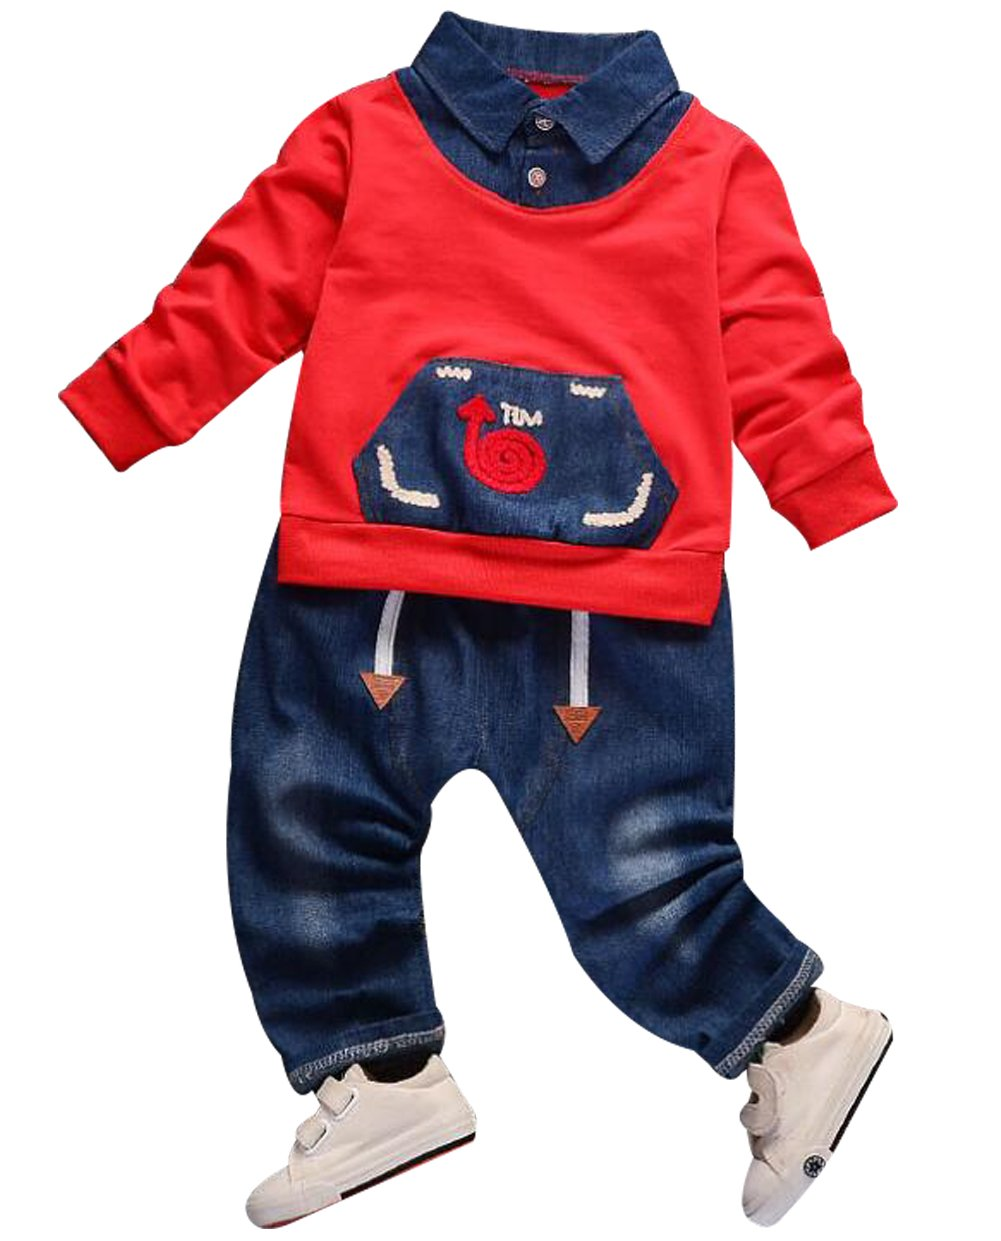 UNIQUEONE Toddler Boys Girls Long Sleeve Cartoon Print Pocket Coat Tops+Denim Pant Outfits Size 3-4 Years/Tag110 (Red)